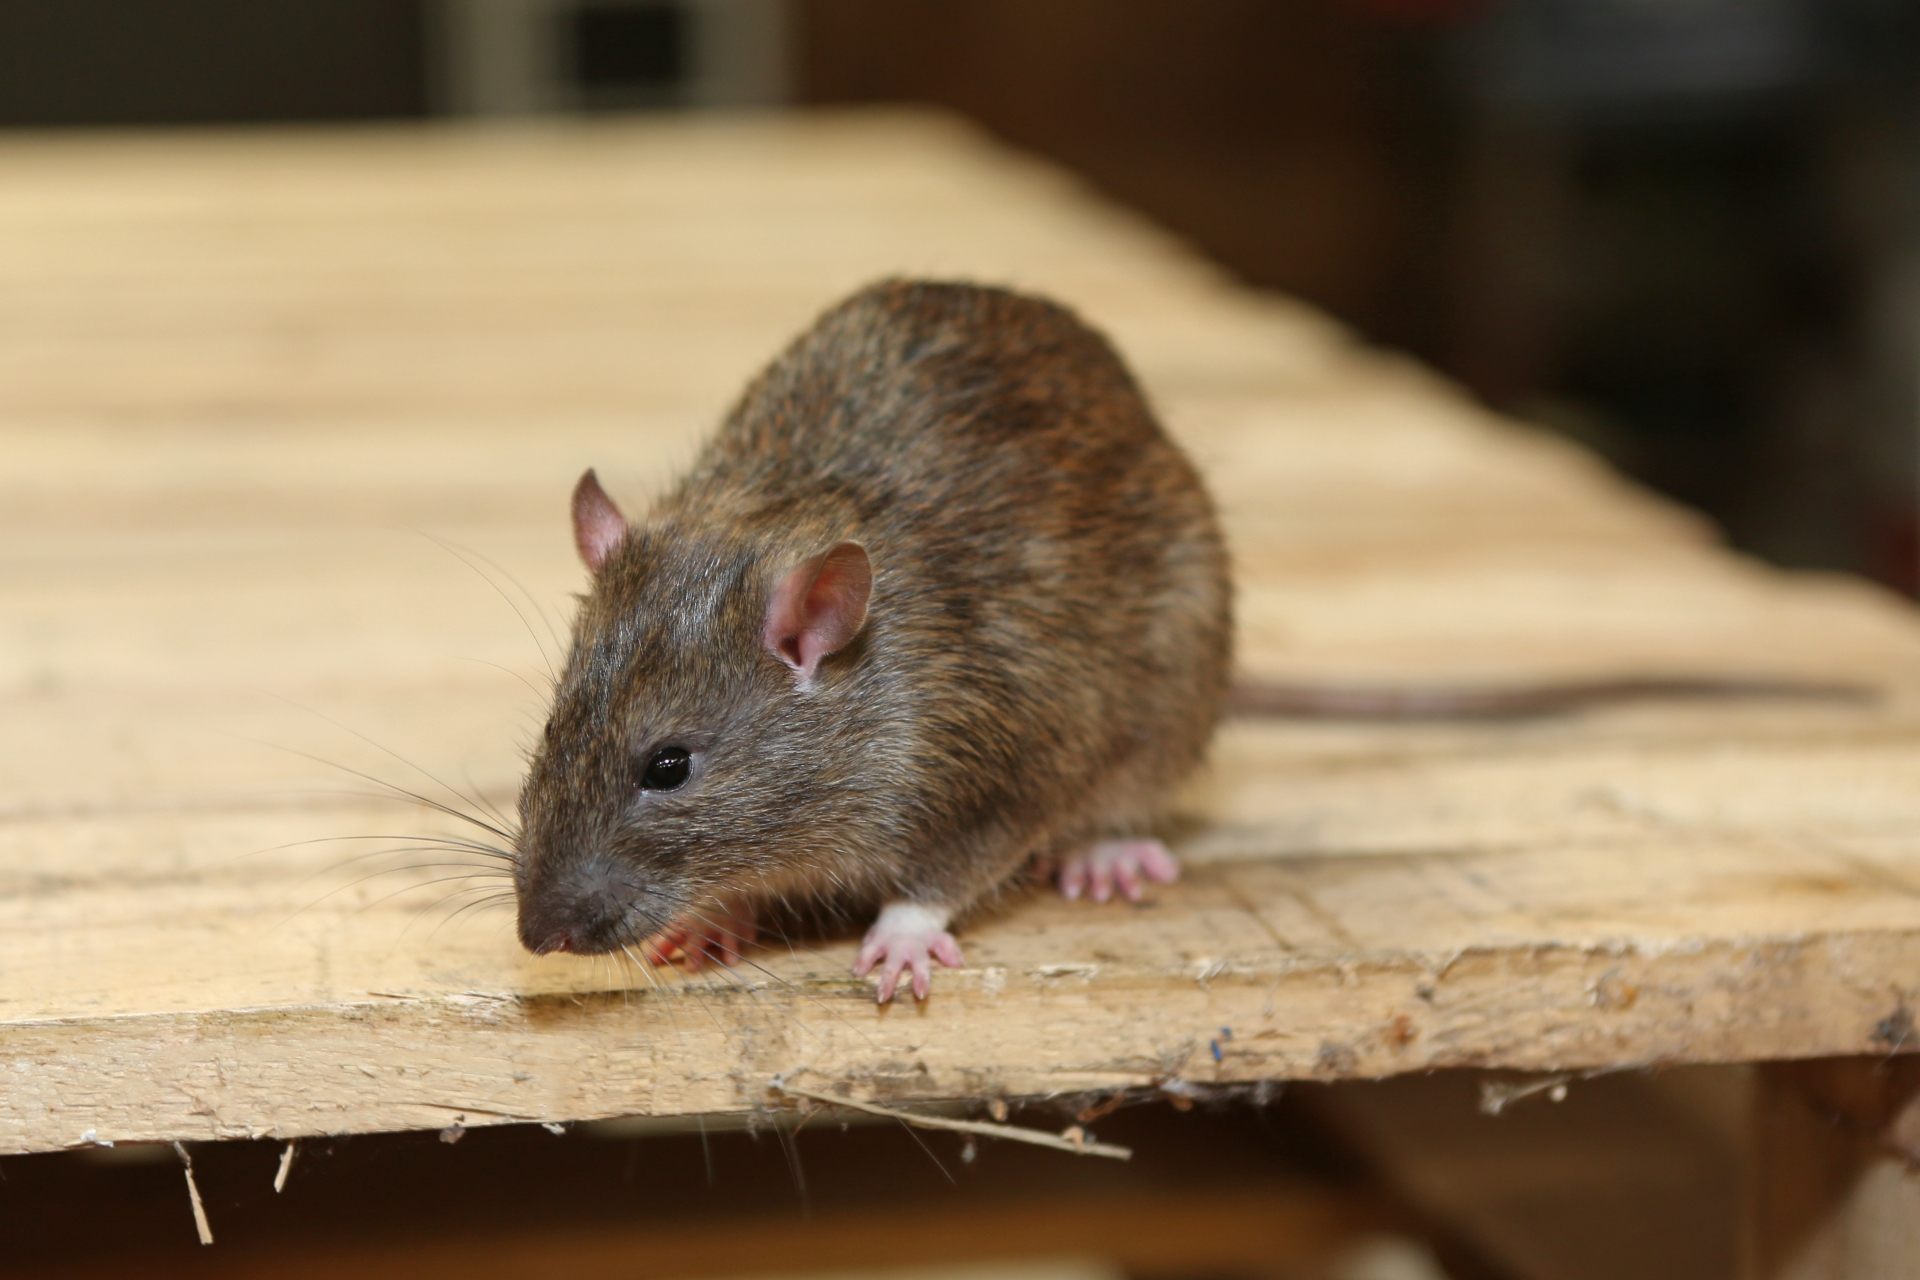 Rat Infestation, Pest Control in Purfleet, RM19. Call Now 020 8166 9746